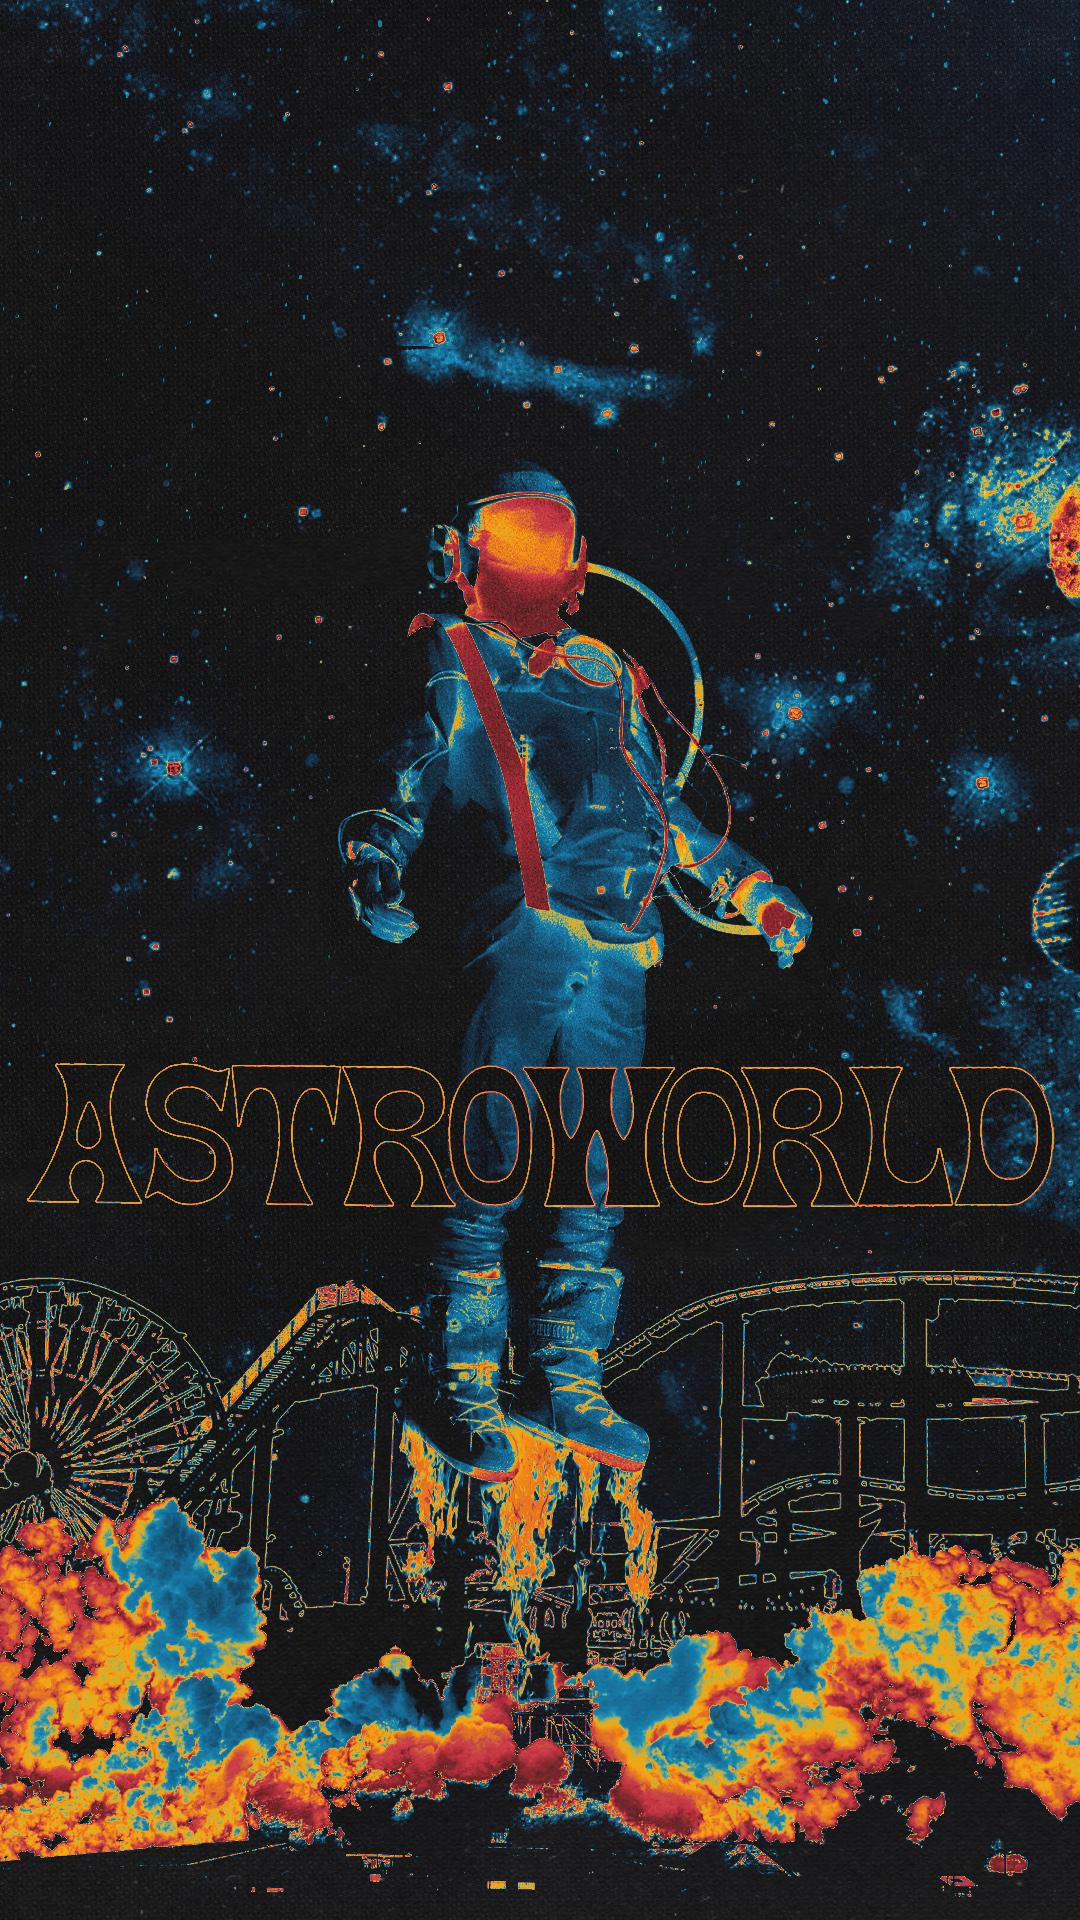 Astroworld Phone Wallpapers Top Free Astroworld Phone Backgrounds Wallpaperaccess